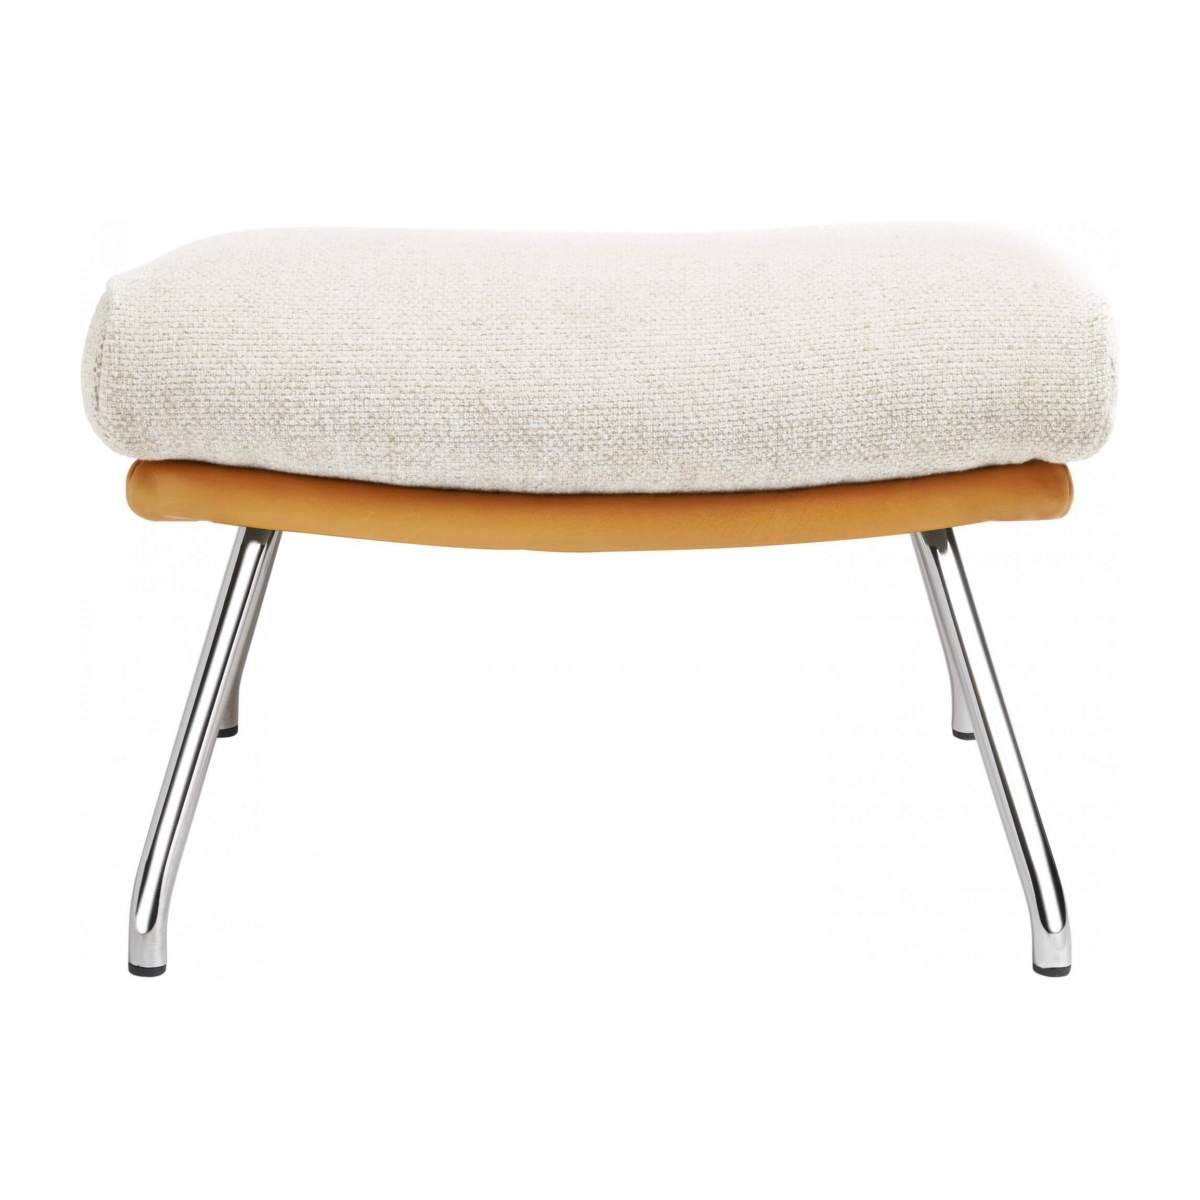 Footstool in Ancio fabric, nature et cuir marron with chromed metal legs n°1